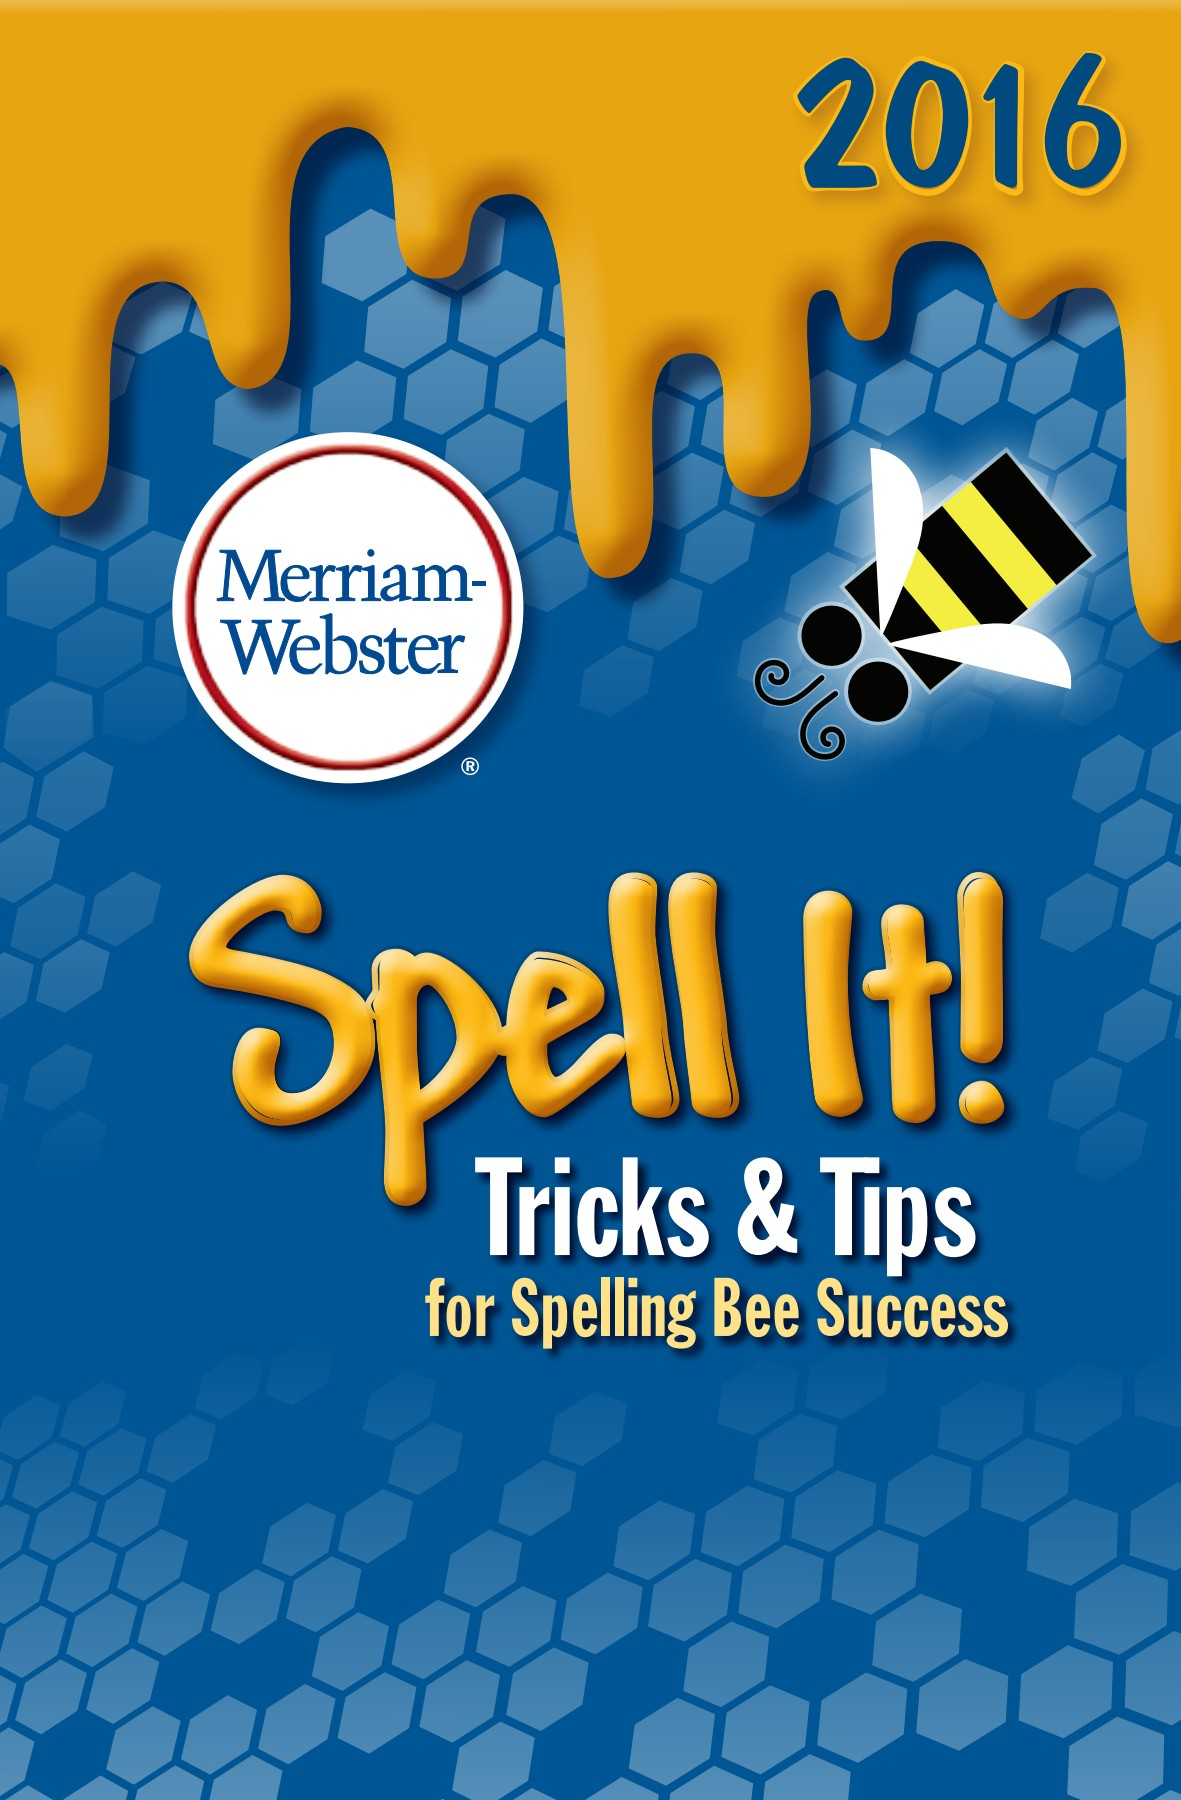 Spell It!fiflˆˇ˘ - National Spelling Bee Pages 1 - 36 - Text